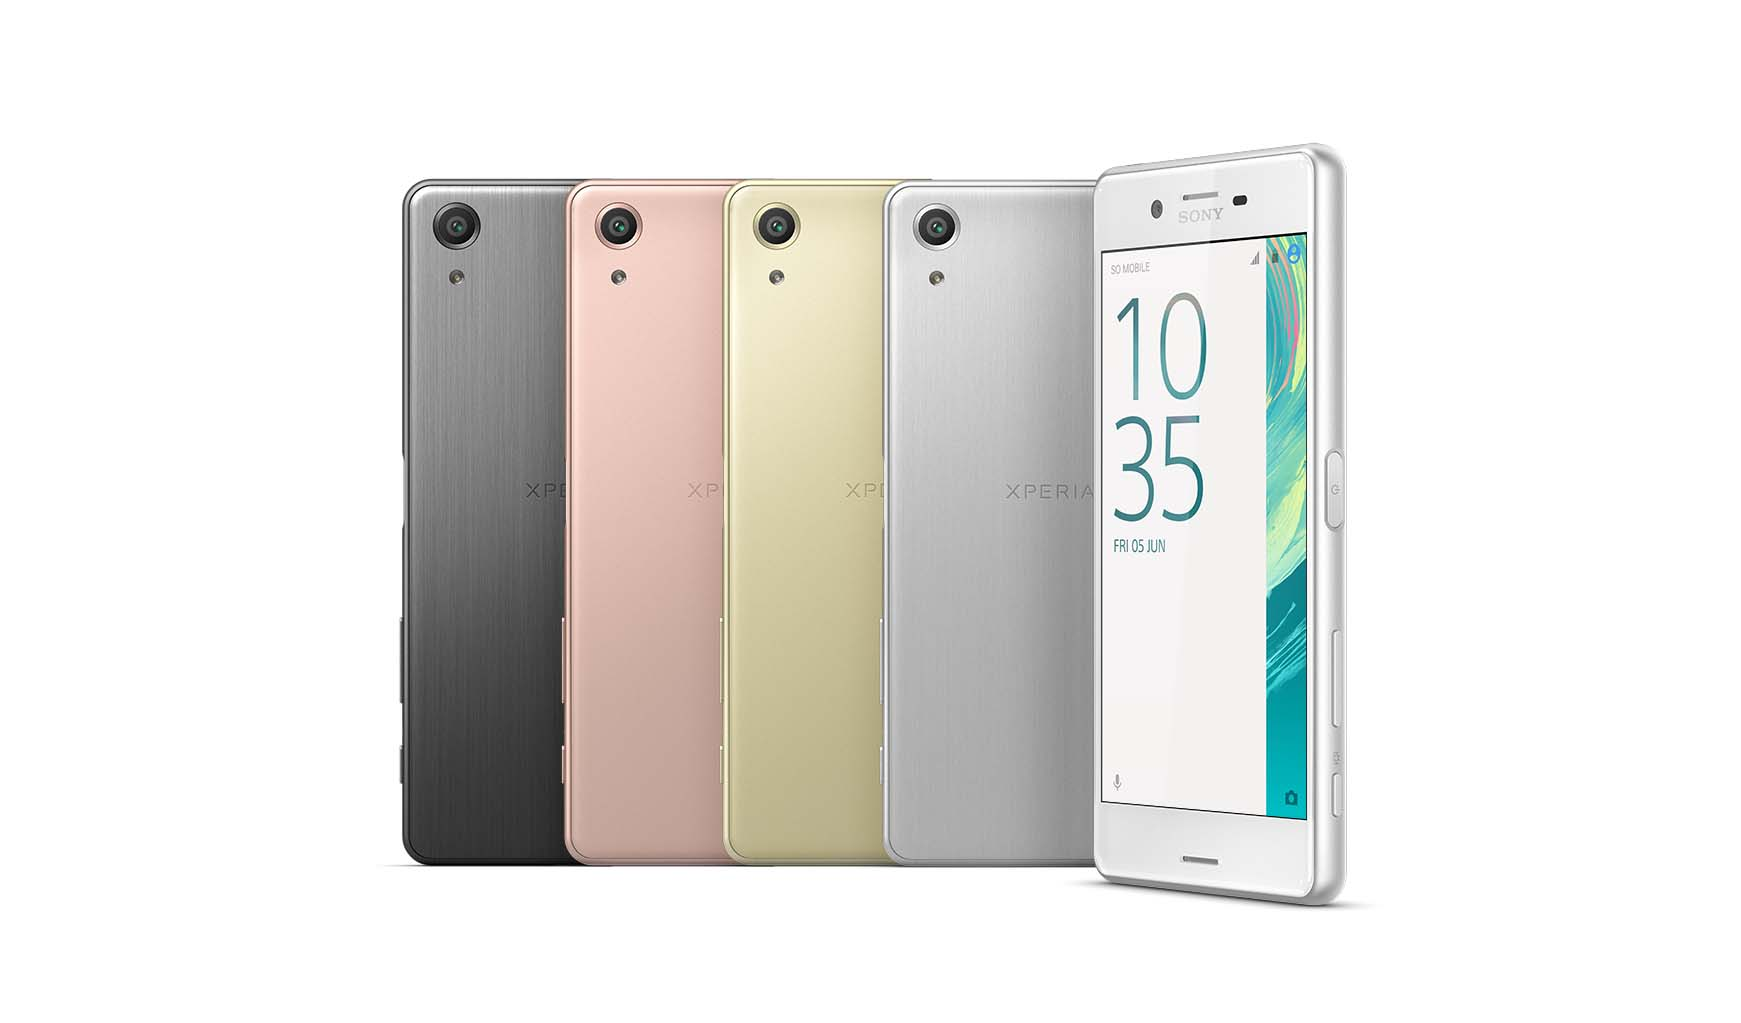 The Xperia X series was skillfully crafted by designers who strive to create a phone with the perfect hand fit for users. Available in White, Graphite Black, Lime Gold and Rose Gold.